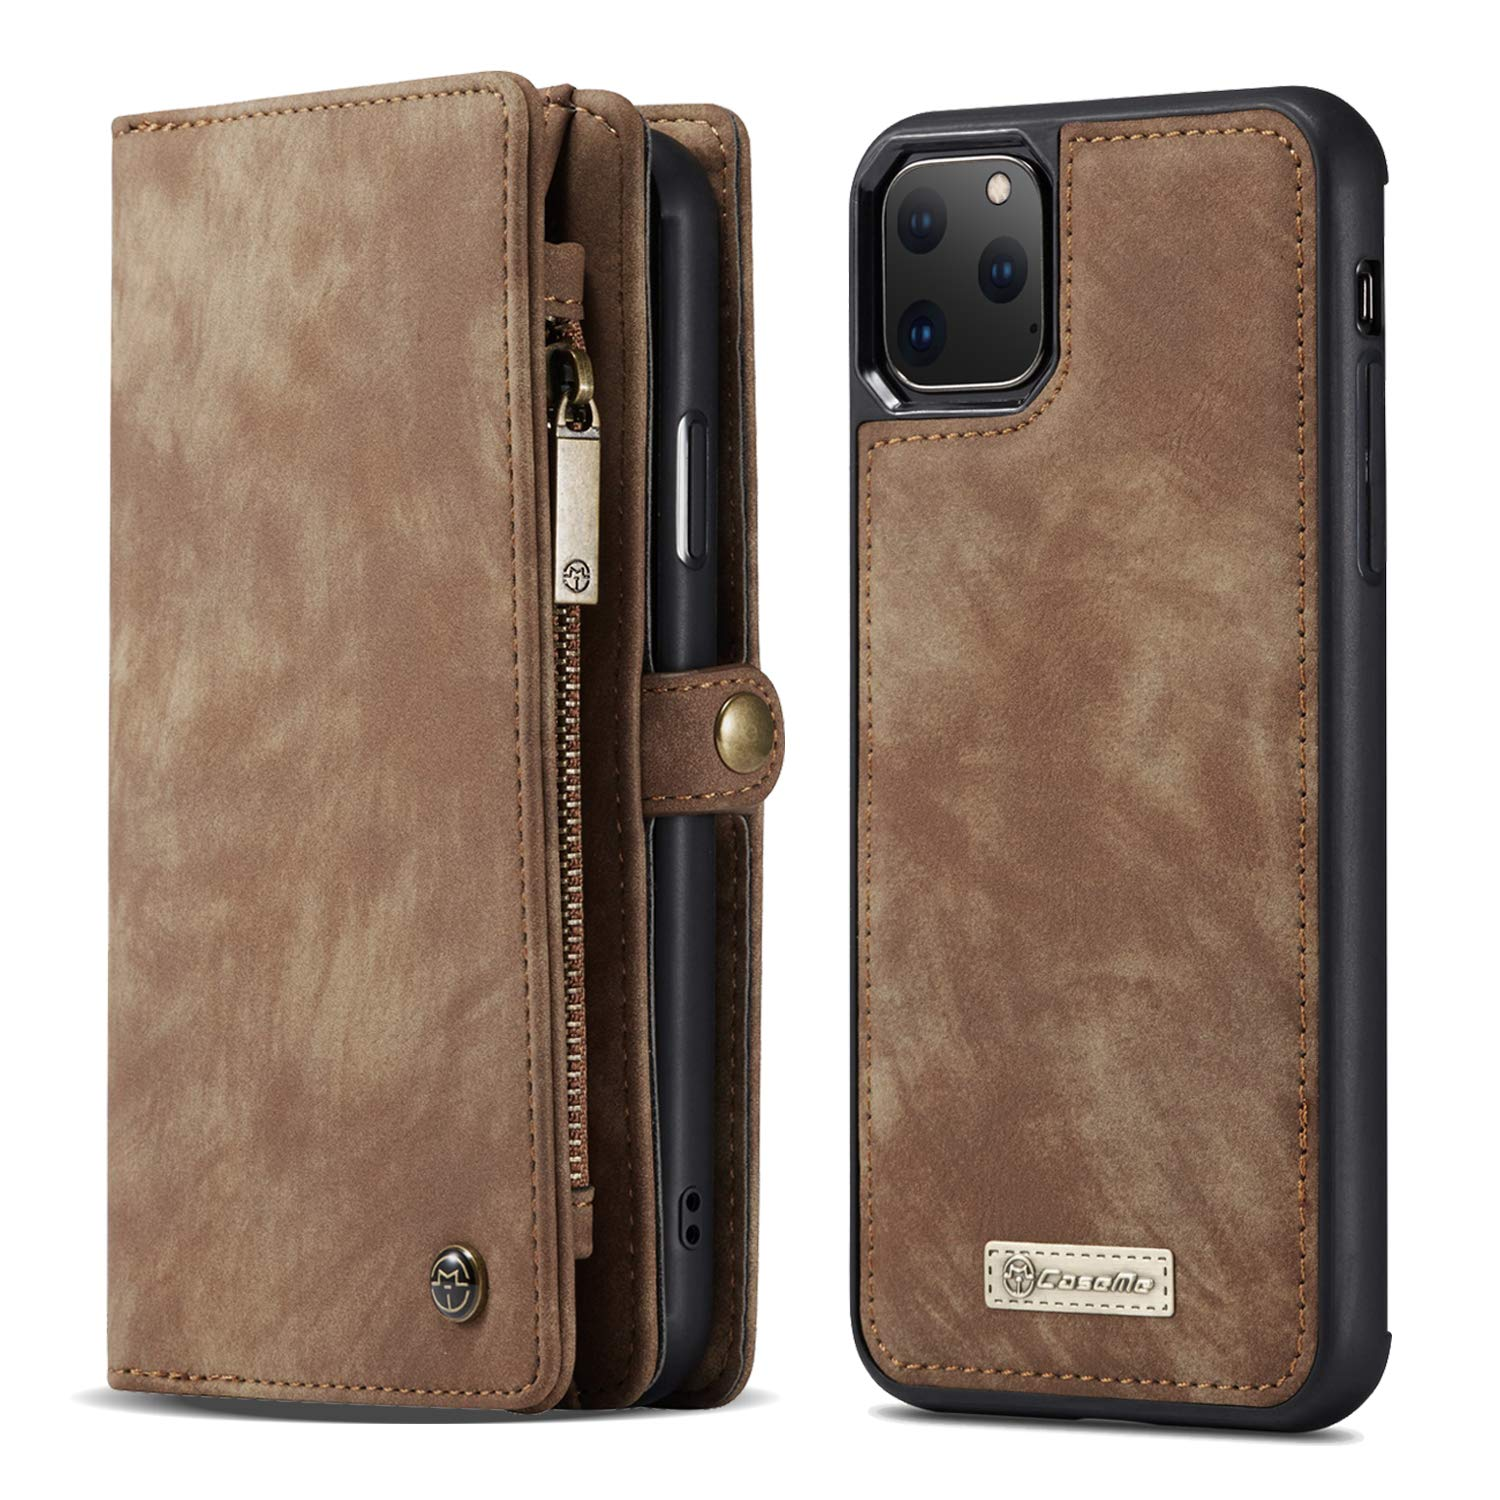 Bchance iPhone 11 Pro Max Wallet Case, Pu Leather Zipper Phone Case Detachable Magnetic Card Slots Money Pocket Clutch for Women Folio Style Purse for 6.5 Inch iPhone 11 Pro Max 2019 - Light Brown by Bchance